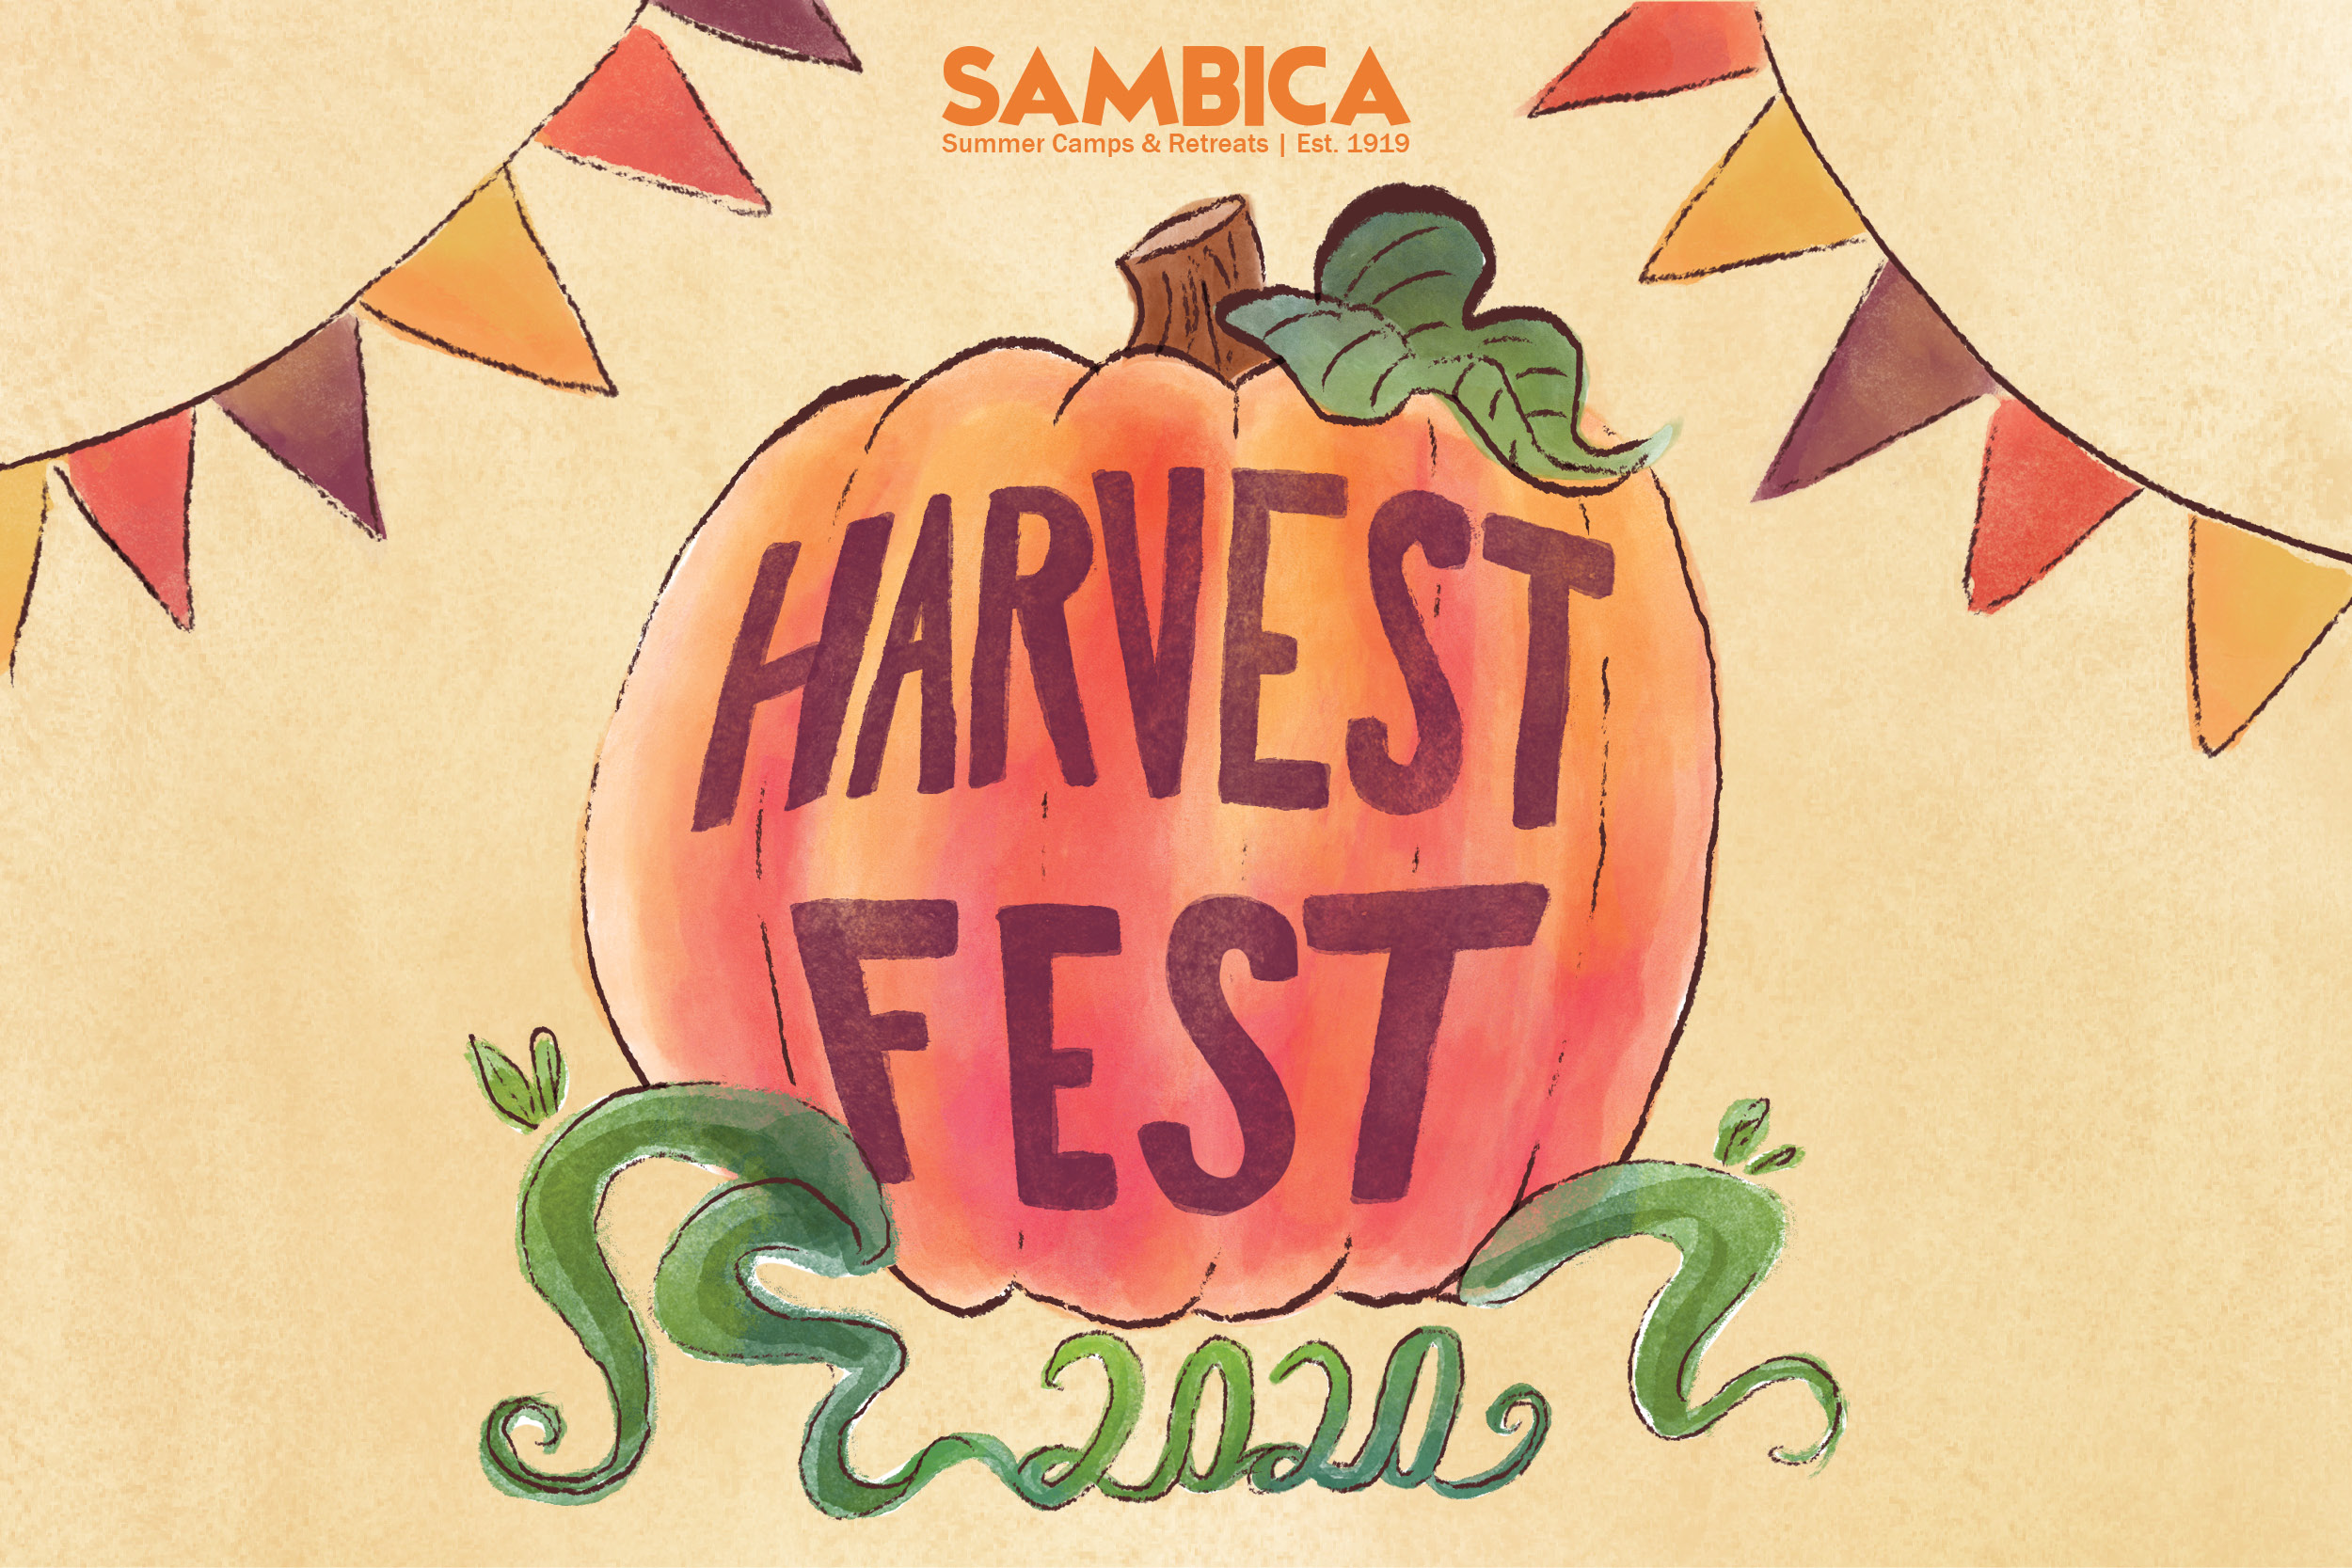 Harvest Fest Website image